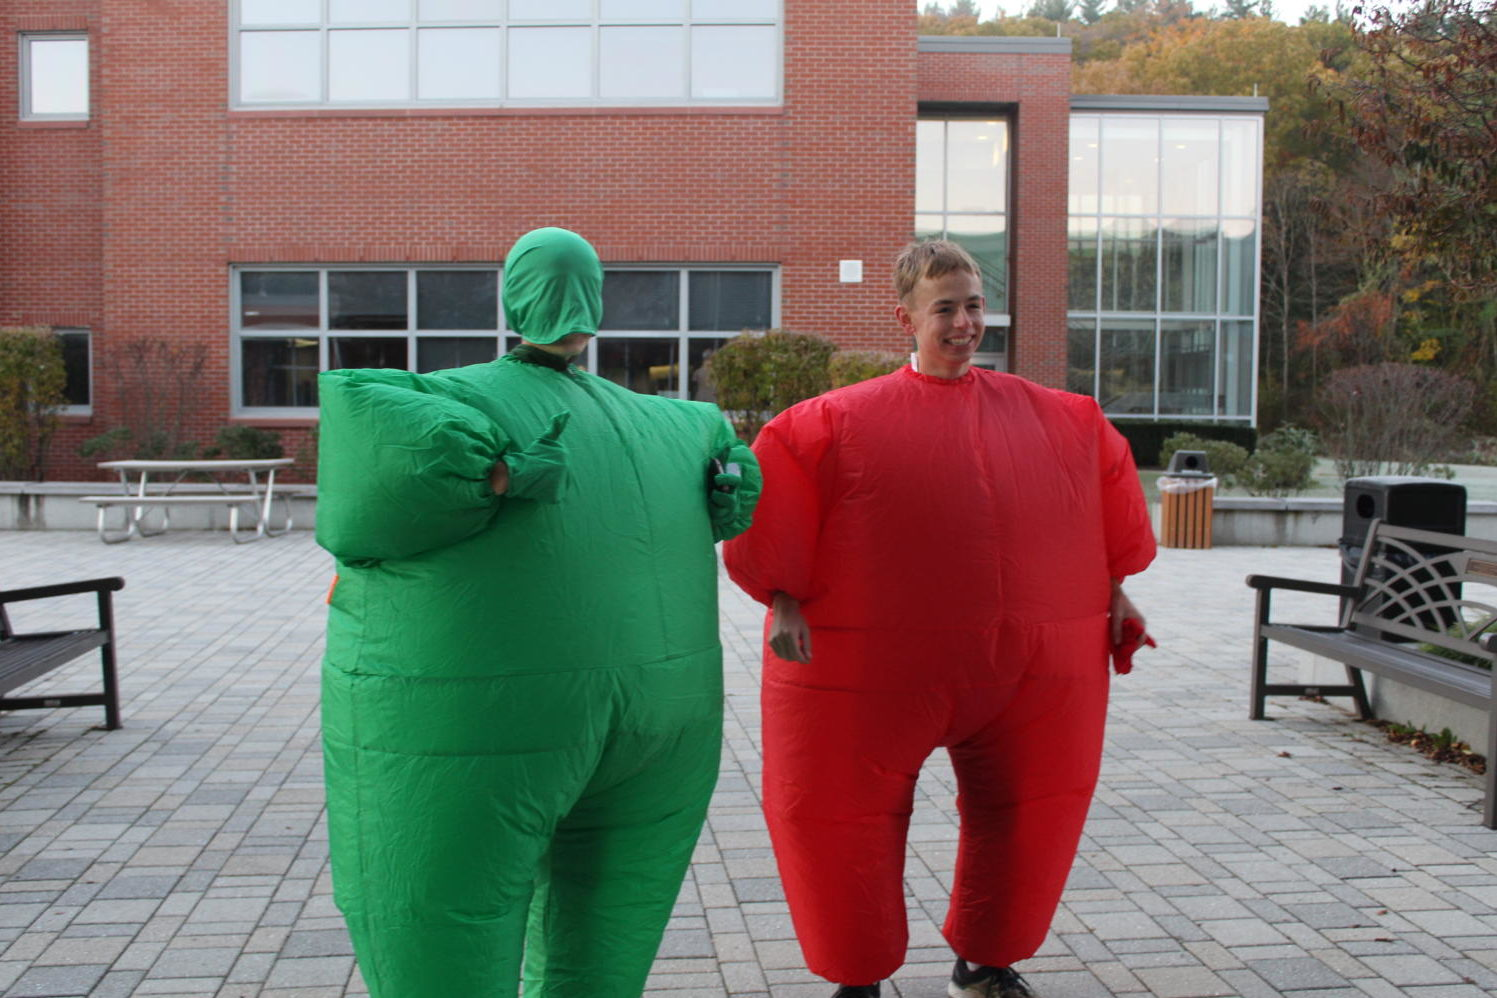 Megean+Walsh+and+Cory+Puckett+dress+up+in+red+and+green+%22fat+suits.%22